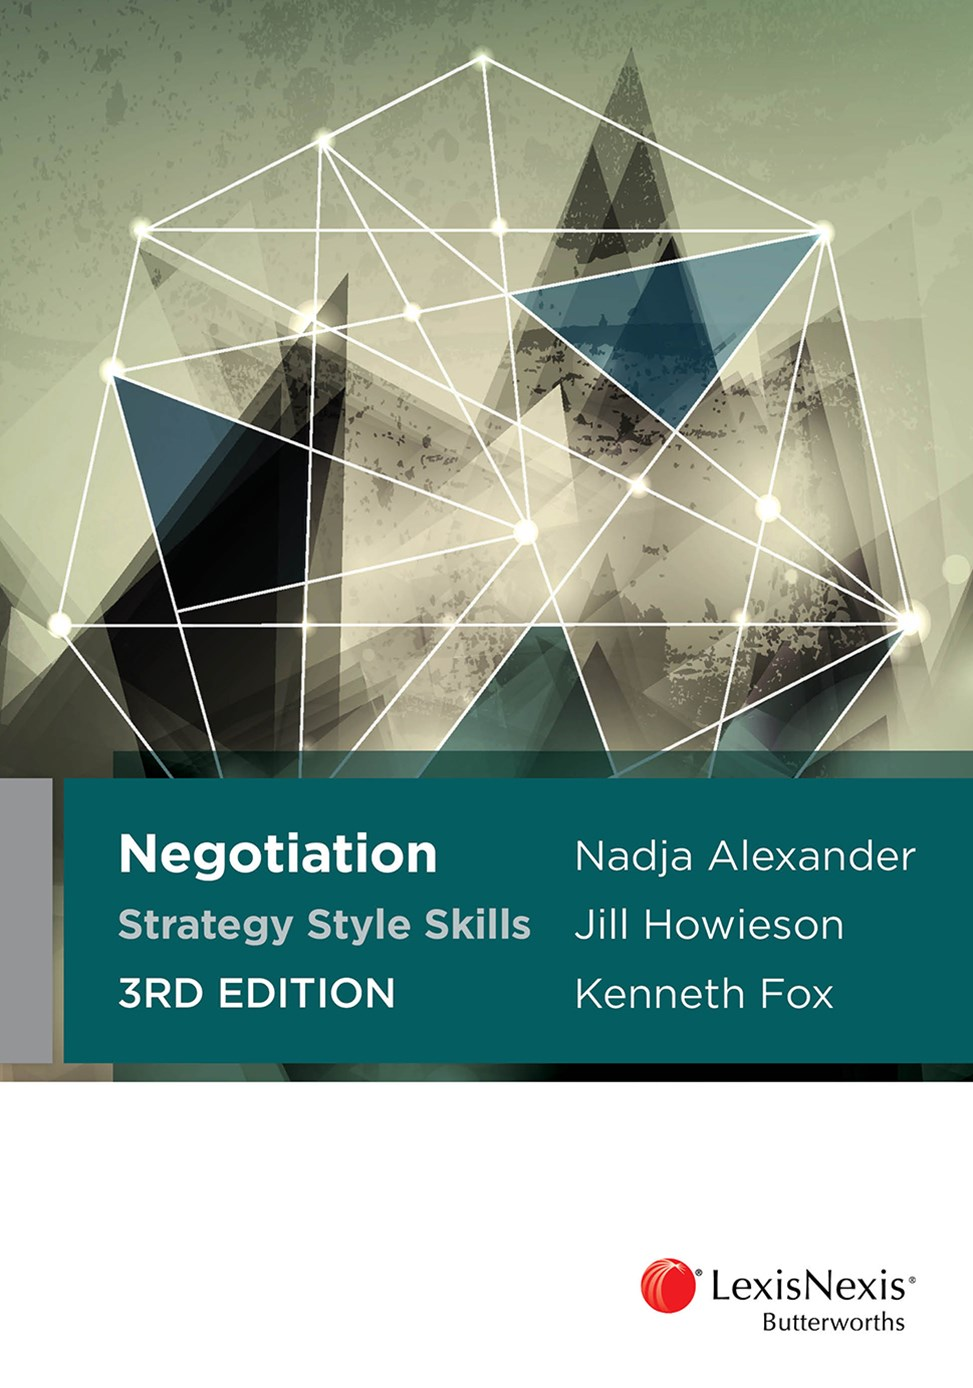 Negotiation Strategy Style Skills, 3rd edition